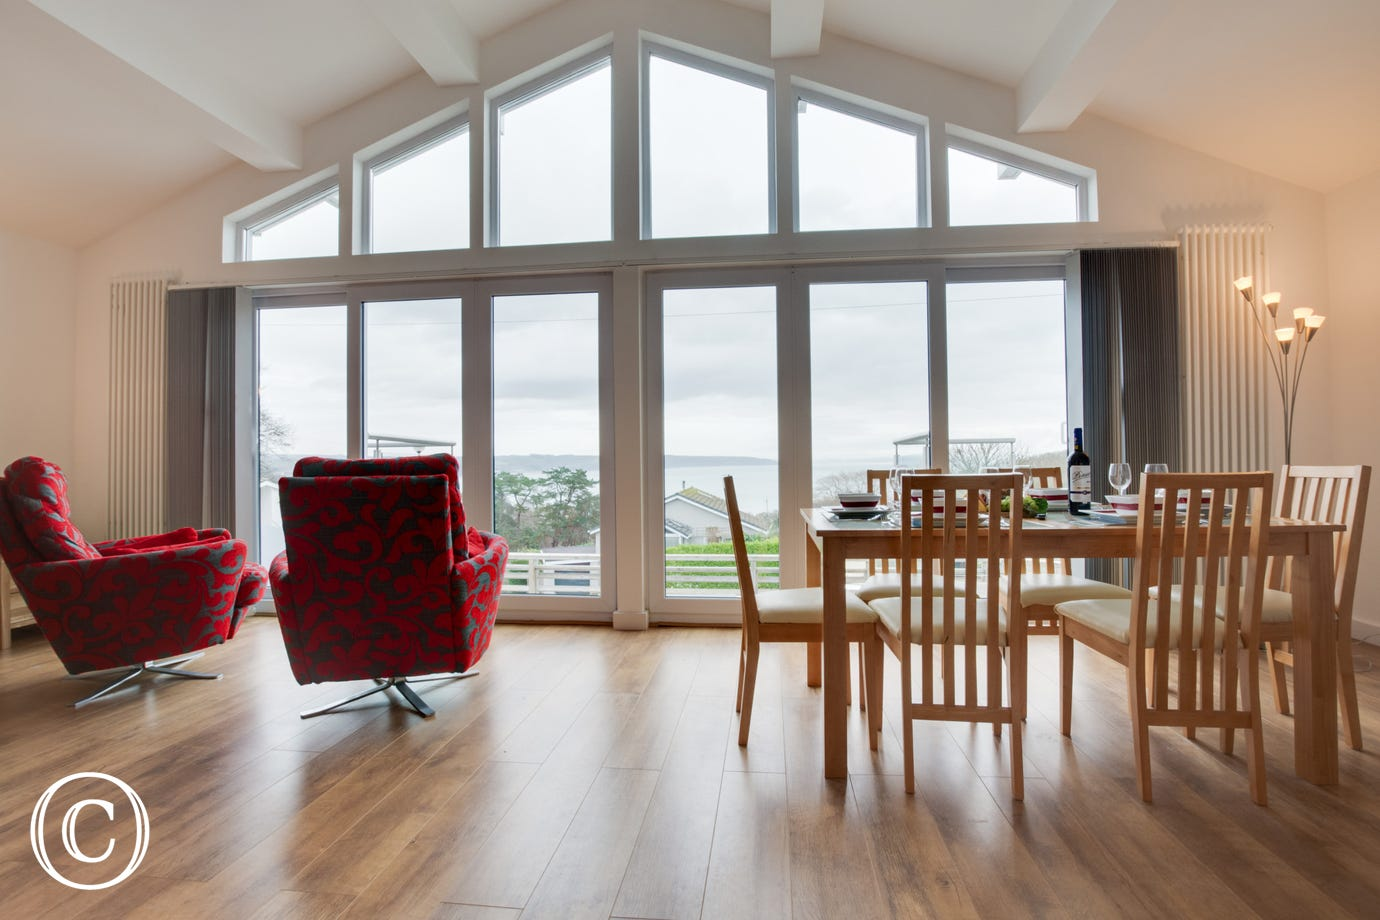 Take advantage of the sea views from this self catering holiday accommodation.